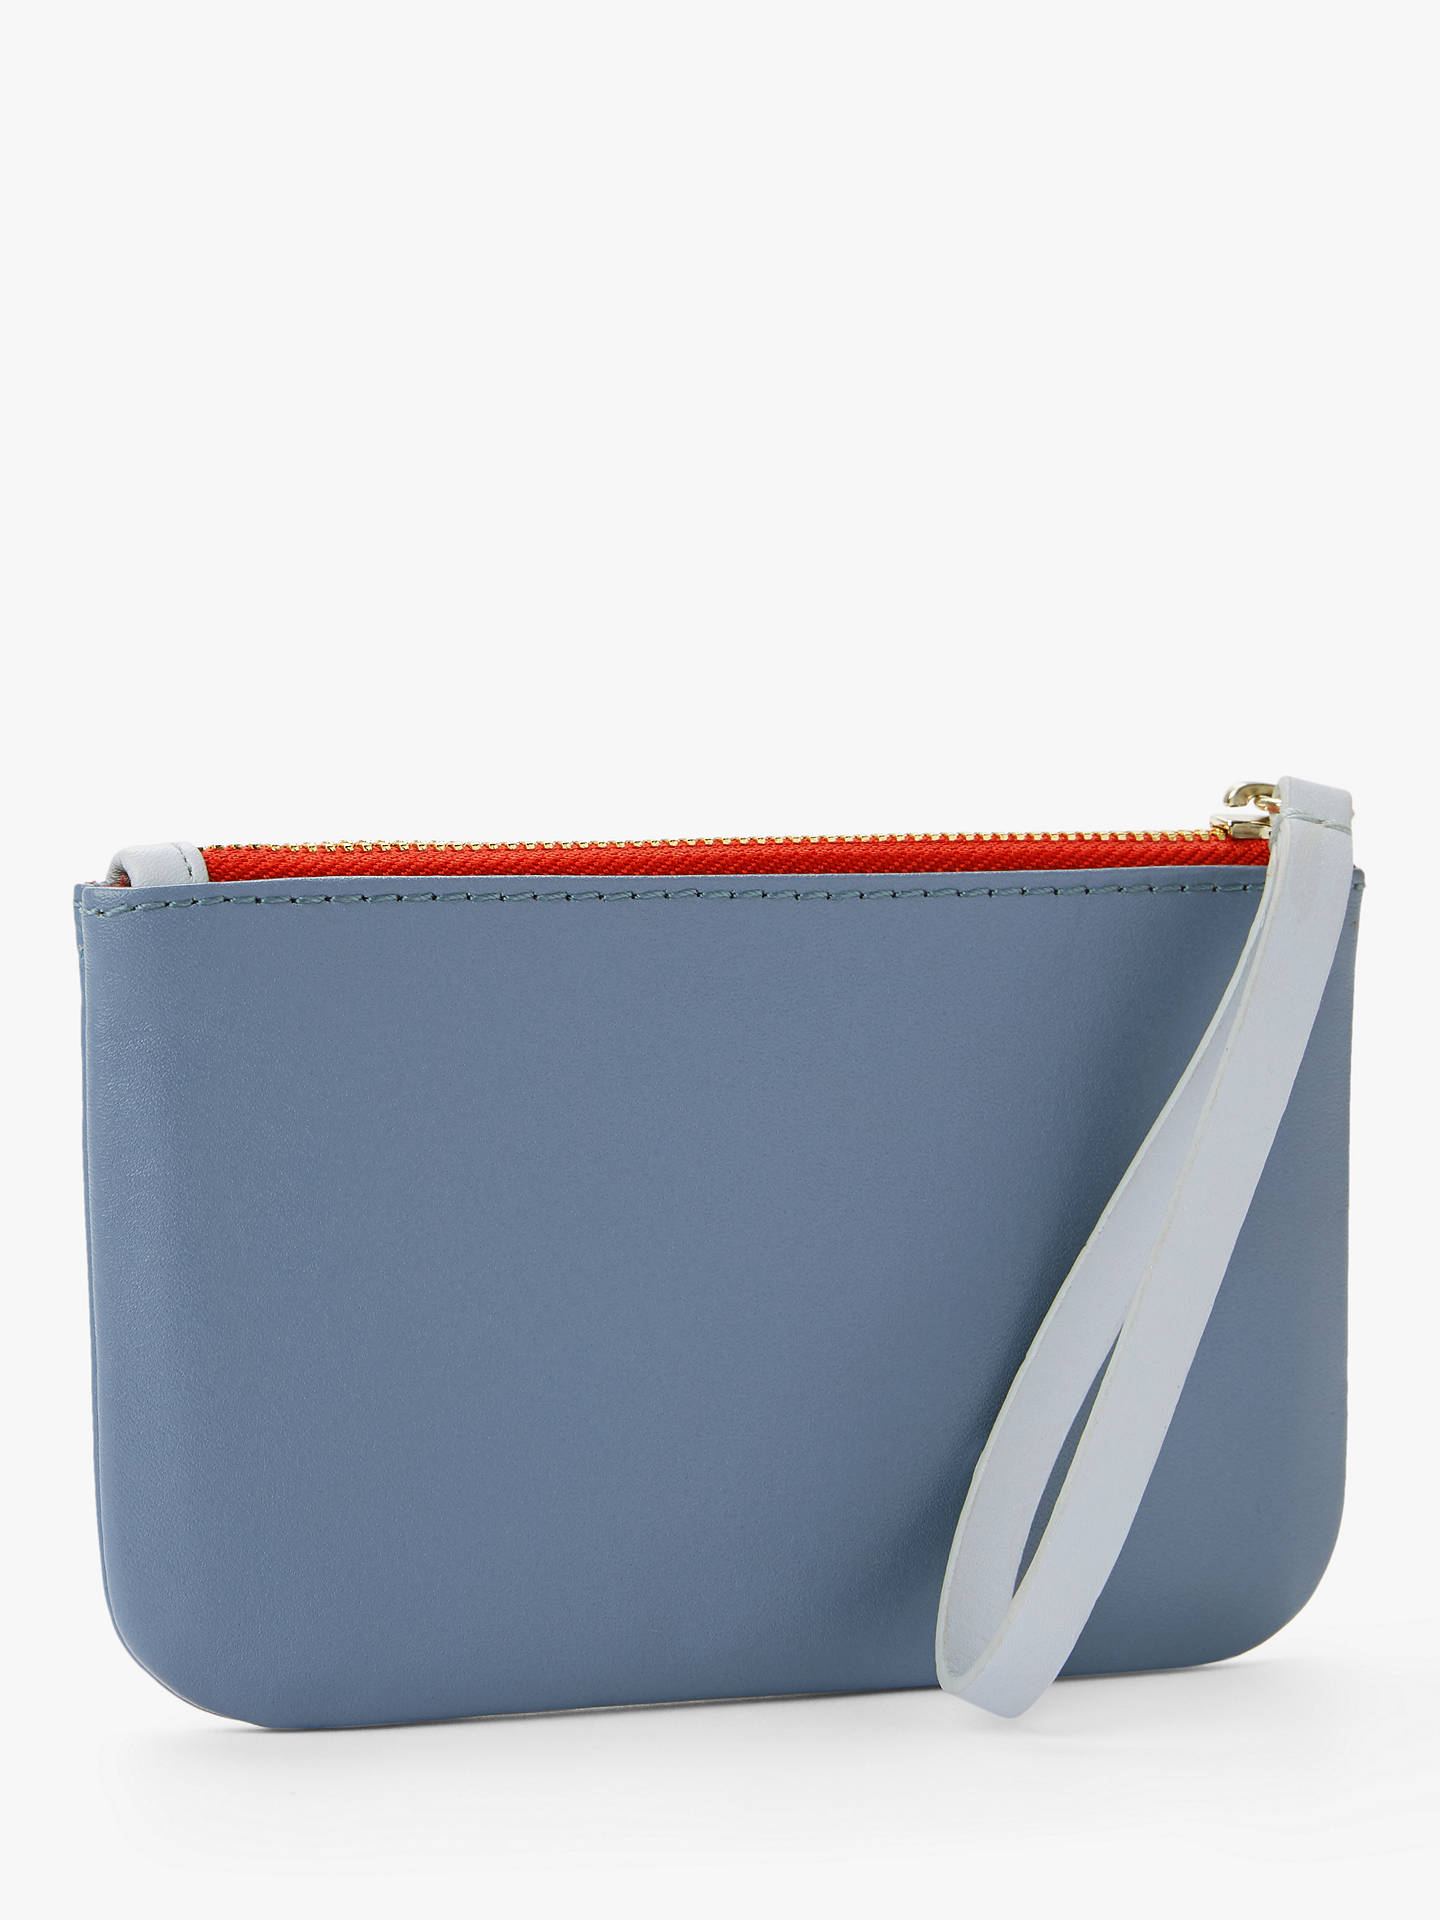 Buy John Lewis & Partners Leather Alphabet Coin Purse, Light Blue C Online at johnlewis.com